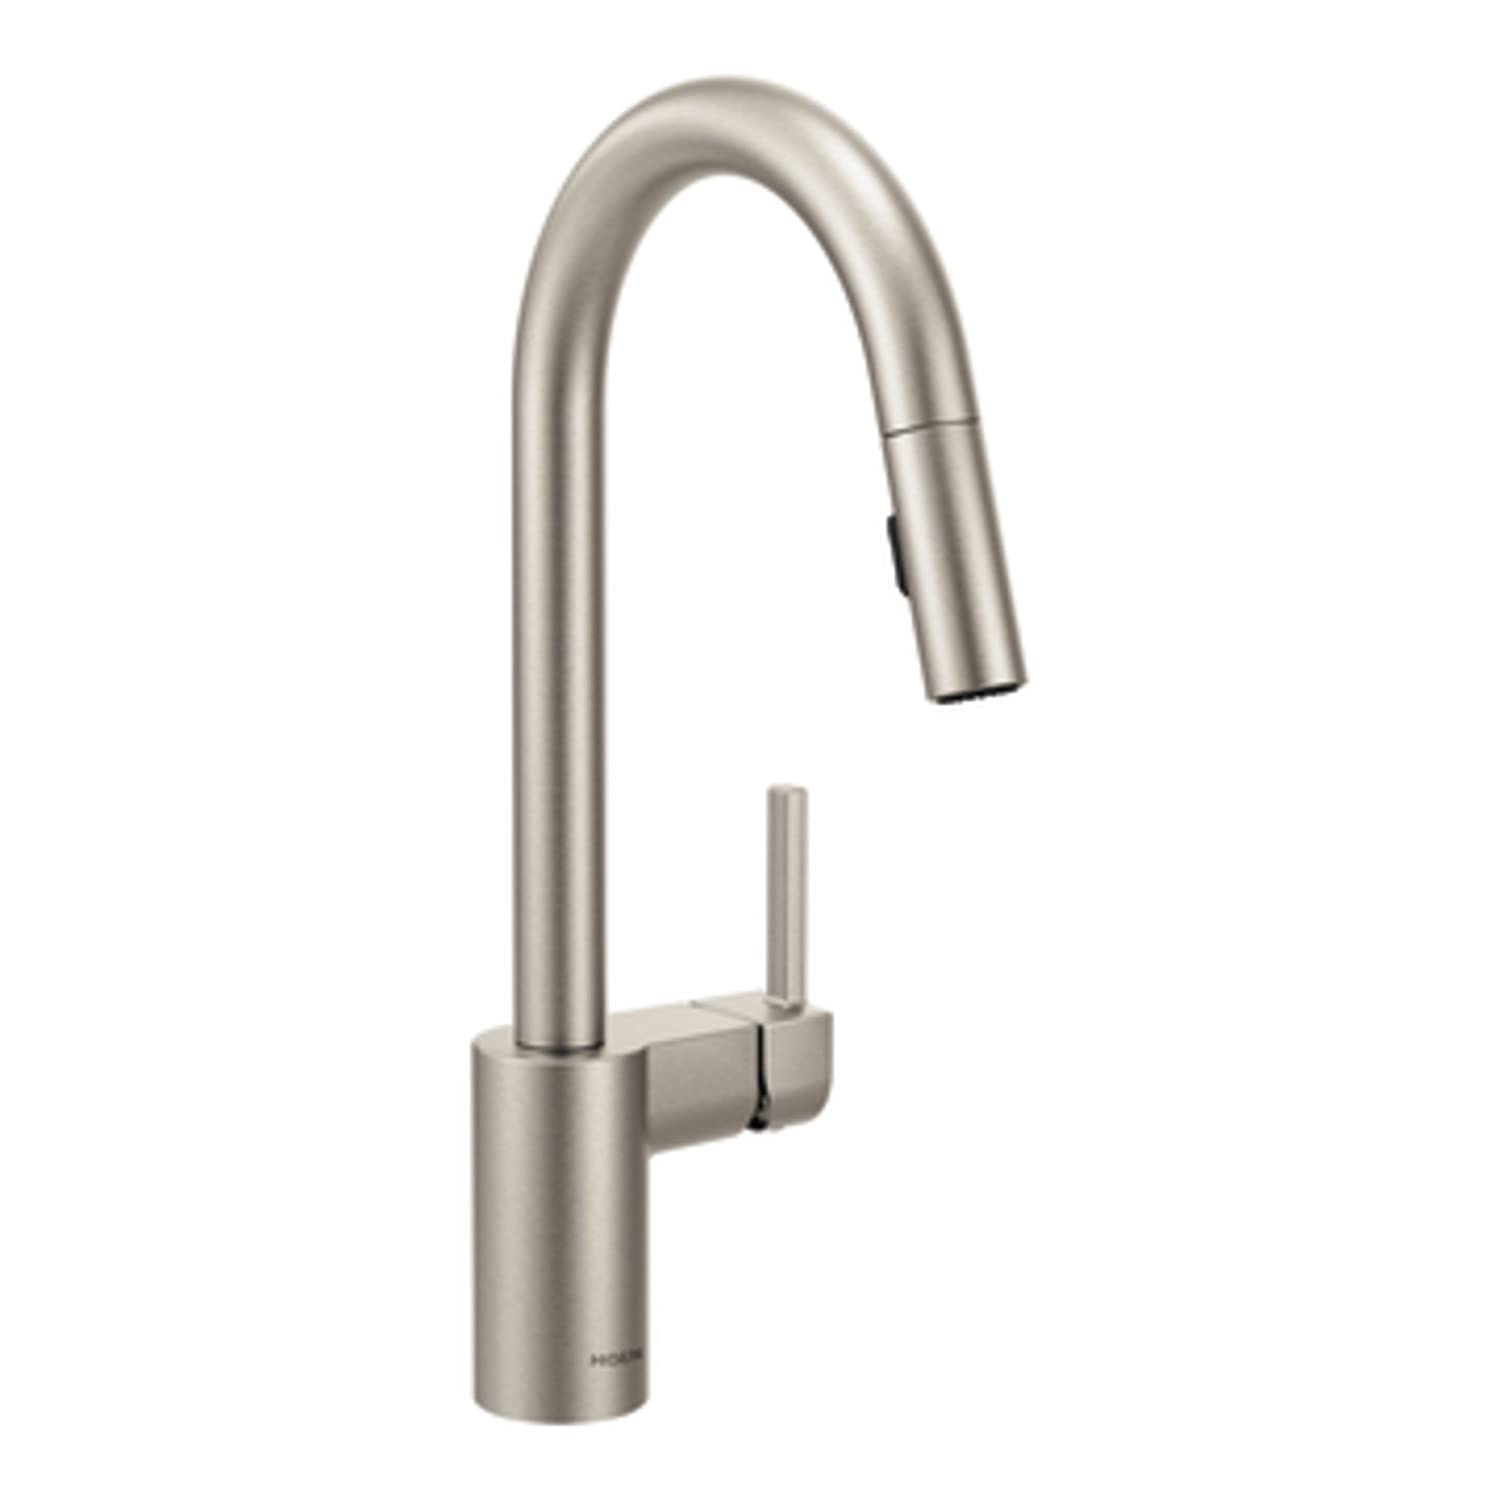 Moen 7565SRS Align One-Handle High-Arc Pulldown Kitchen Faucet, Spot Resist Stainless